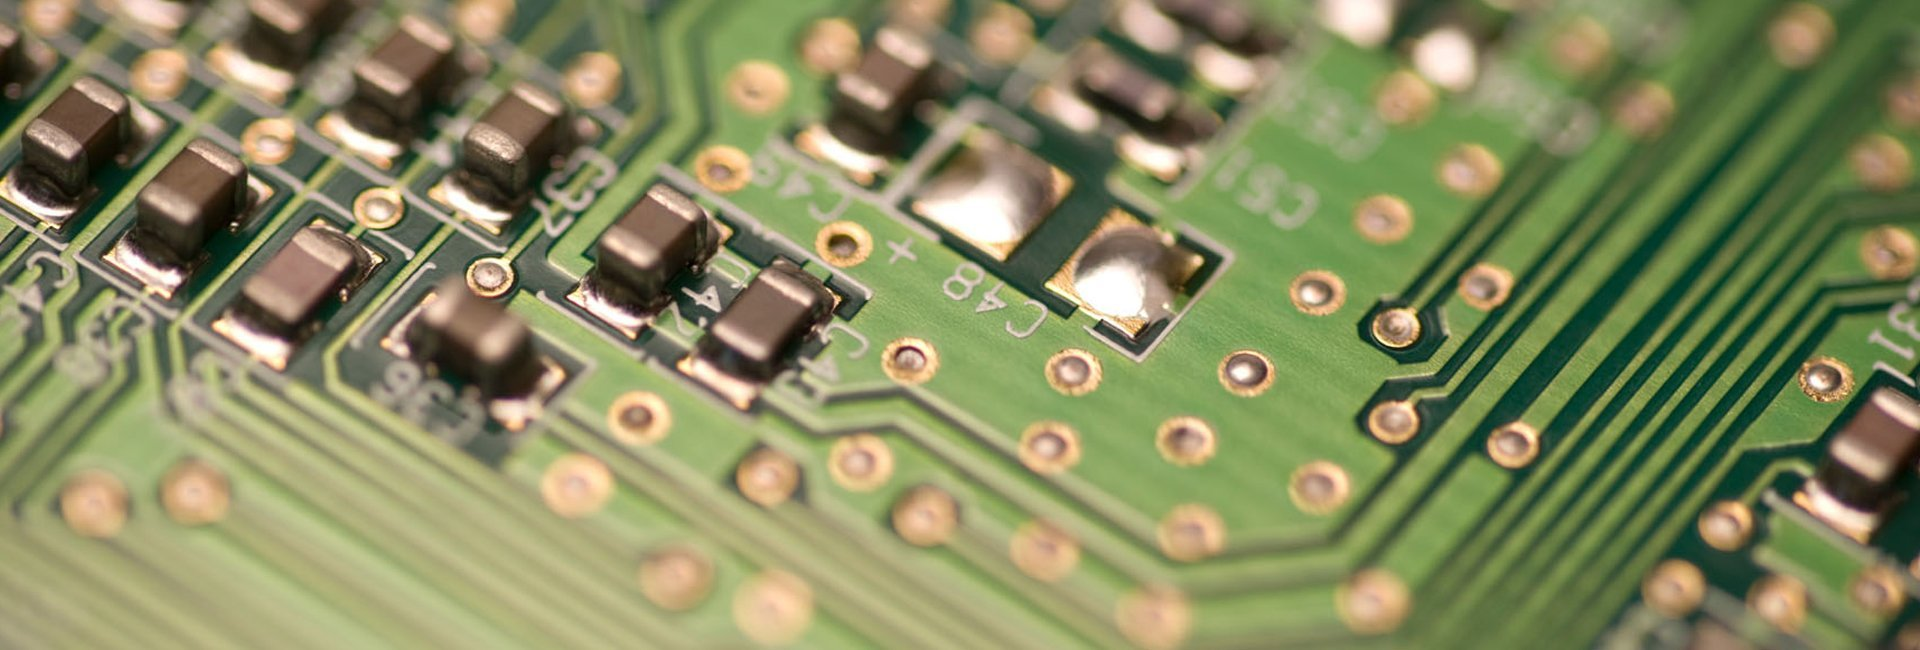 Pcb Design By Irridian Industrial Electronics Pcba Or Printed Circuit Board Assembly And Services